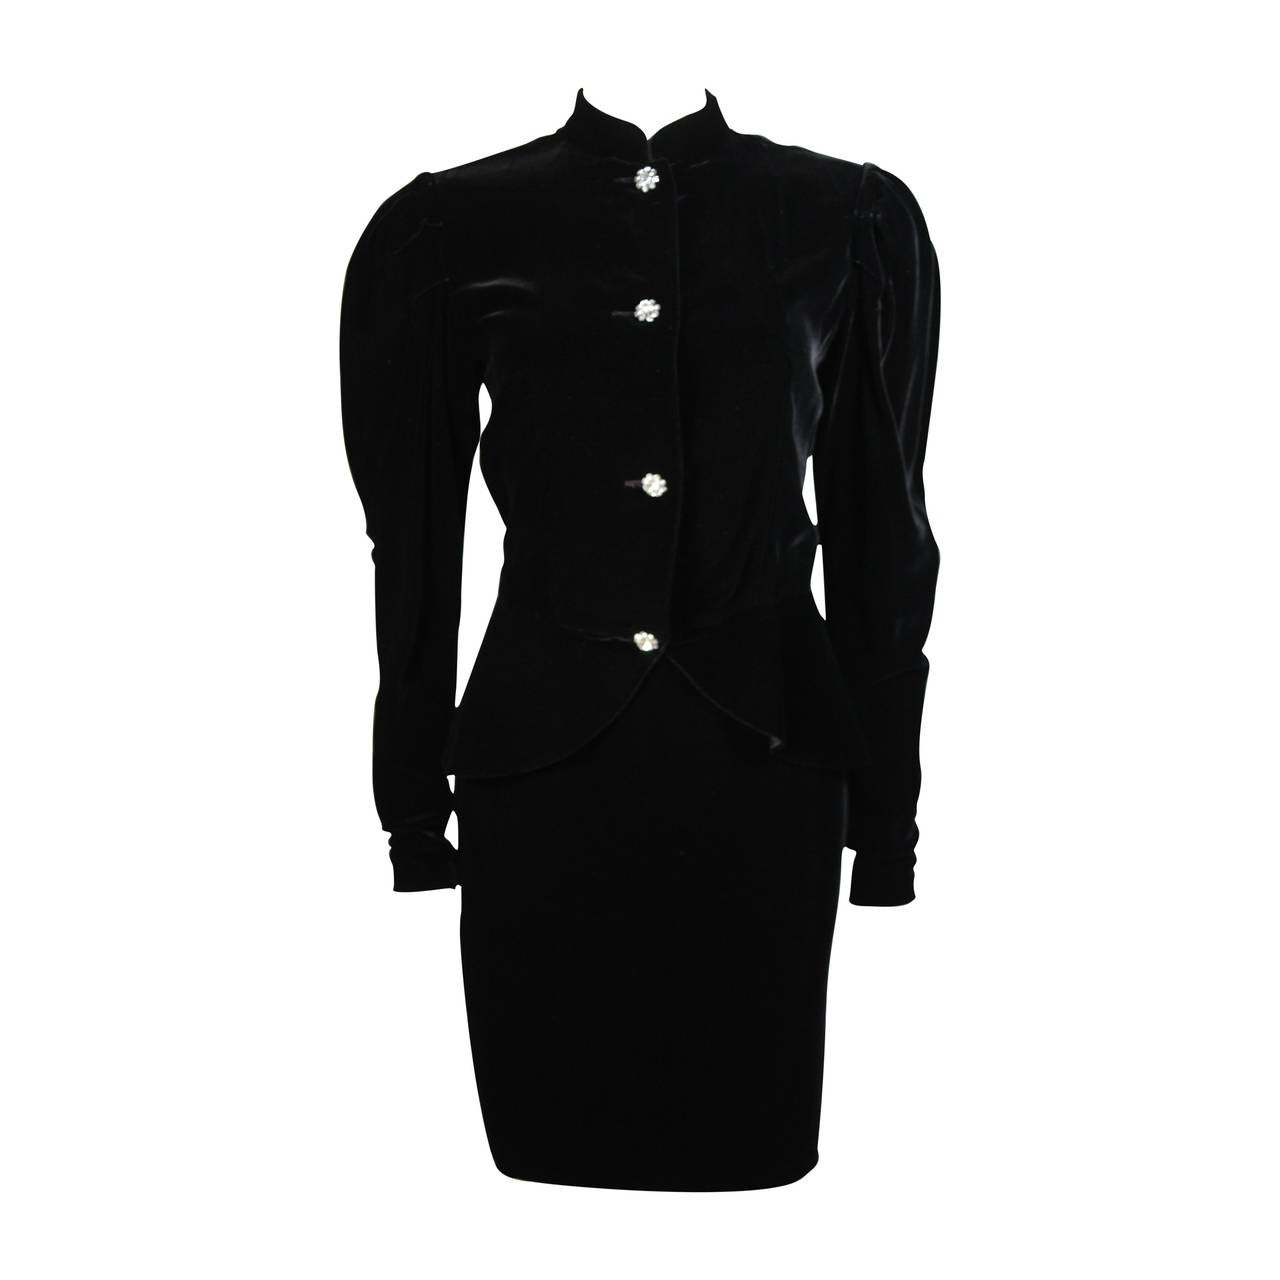 Vicky Tiel Black Velvet Skirt Suit with Rhinestone Buttons Size Small